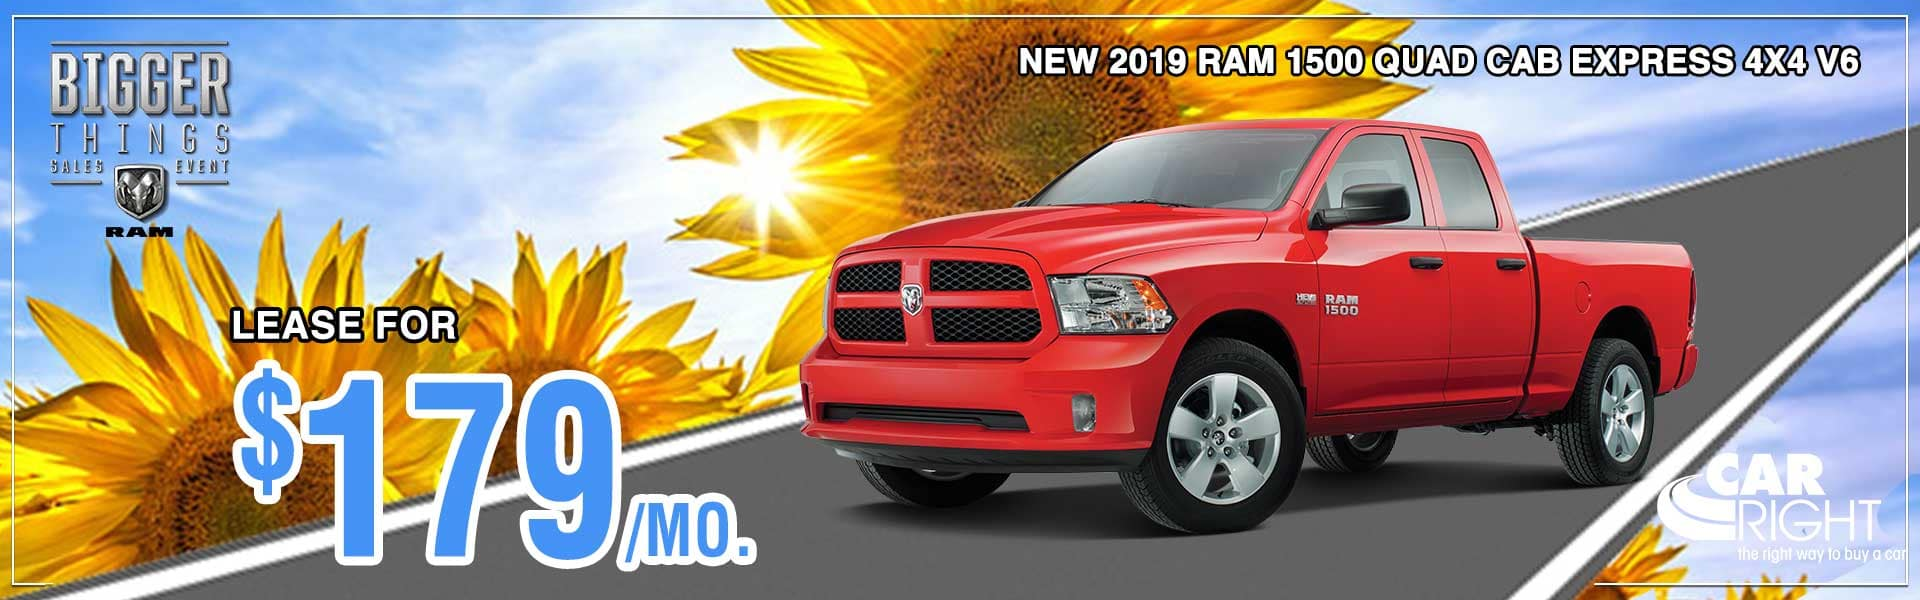 CarRight Chrysler Jeep Dodge Ram Fuso. Moon Township, PA. New, Used, parts, accessories, service. The right way to buy a car.. 2019 Ram 1500 Quad Cab Express 4x4